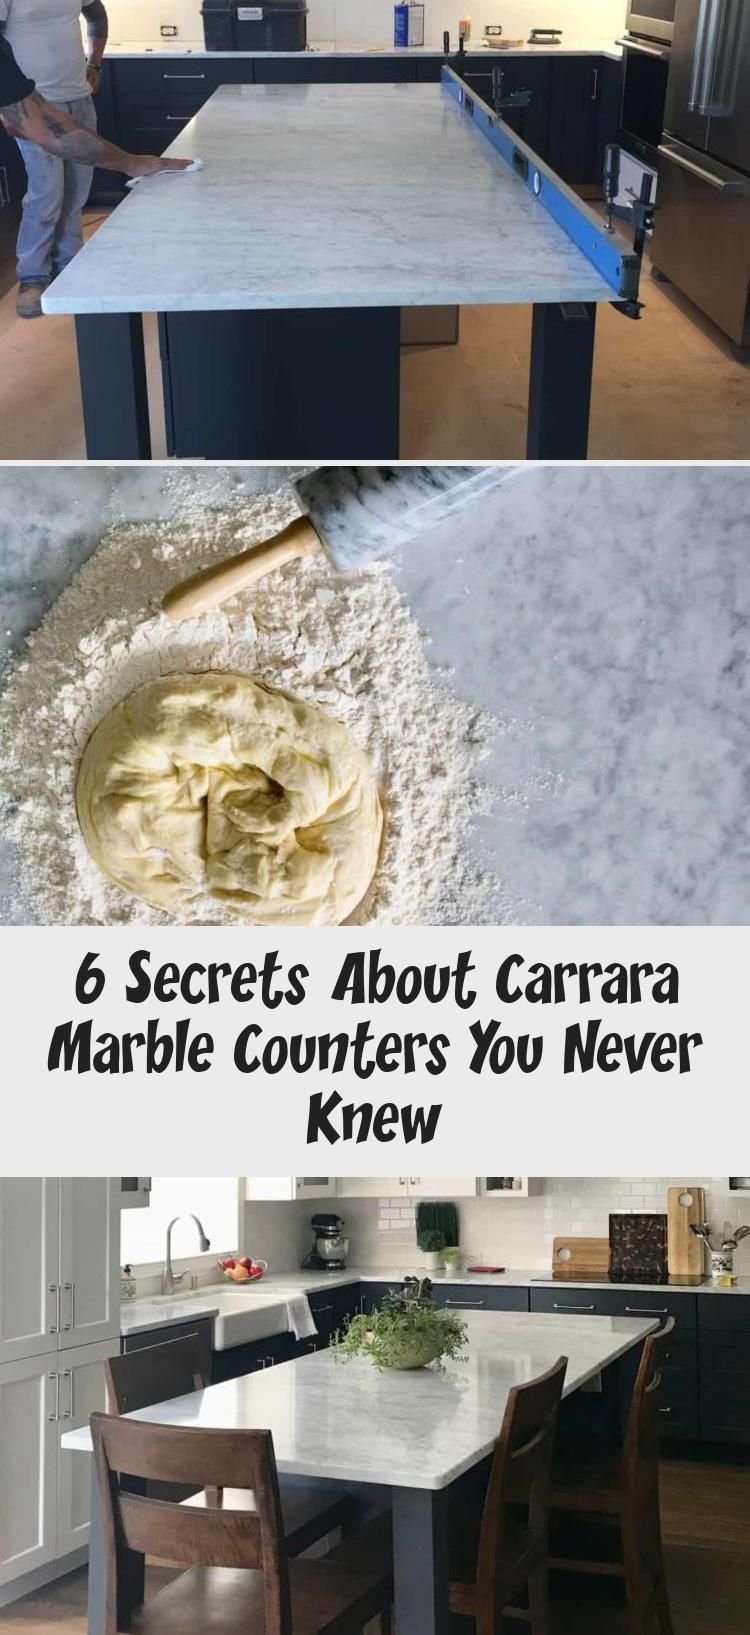 6 Secrets About Carrara Marble Counters You Never Knew Ktchn Carrara Counters Knew Ktchn Marbl In 2020 Marble Counter Marble Countertops Kitchen Carrara Marble